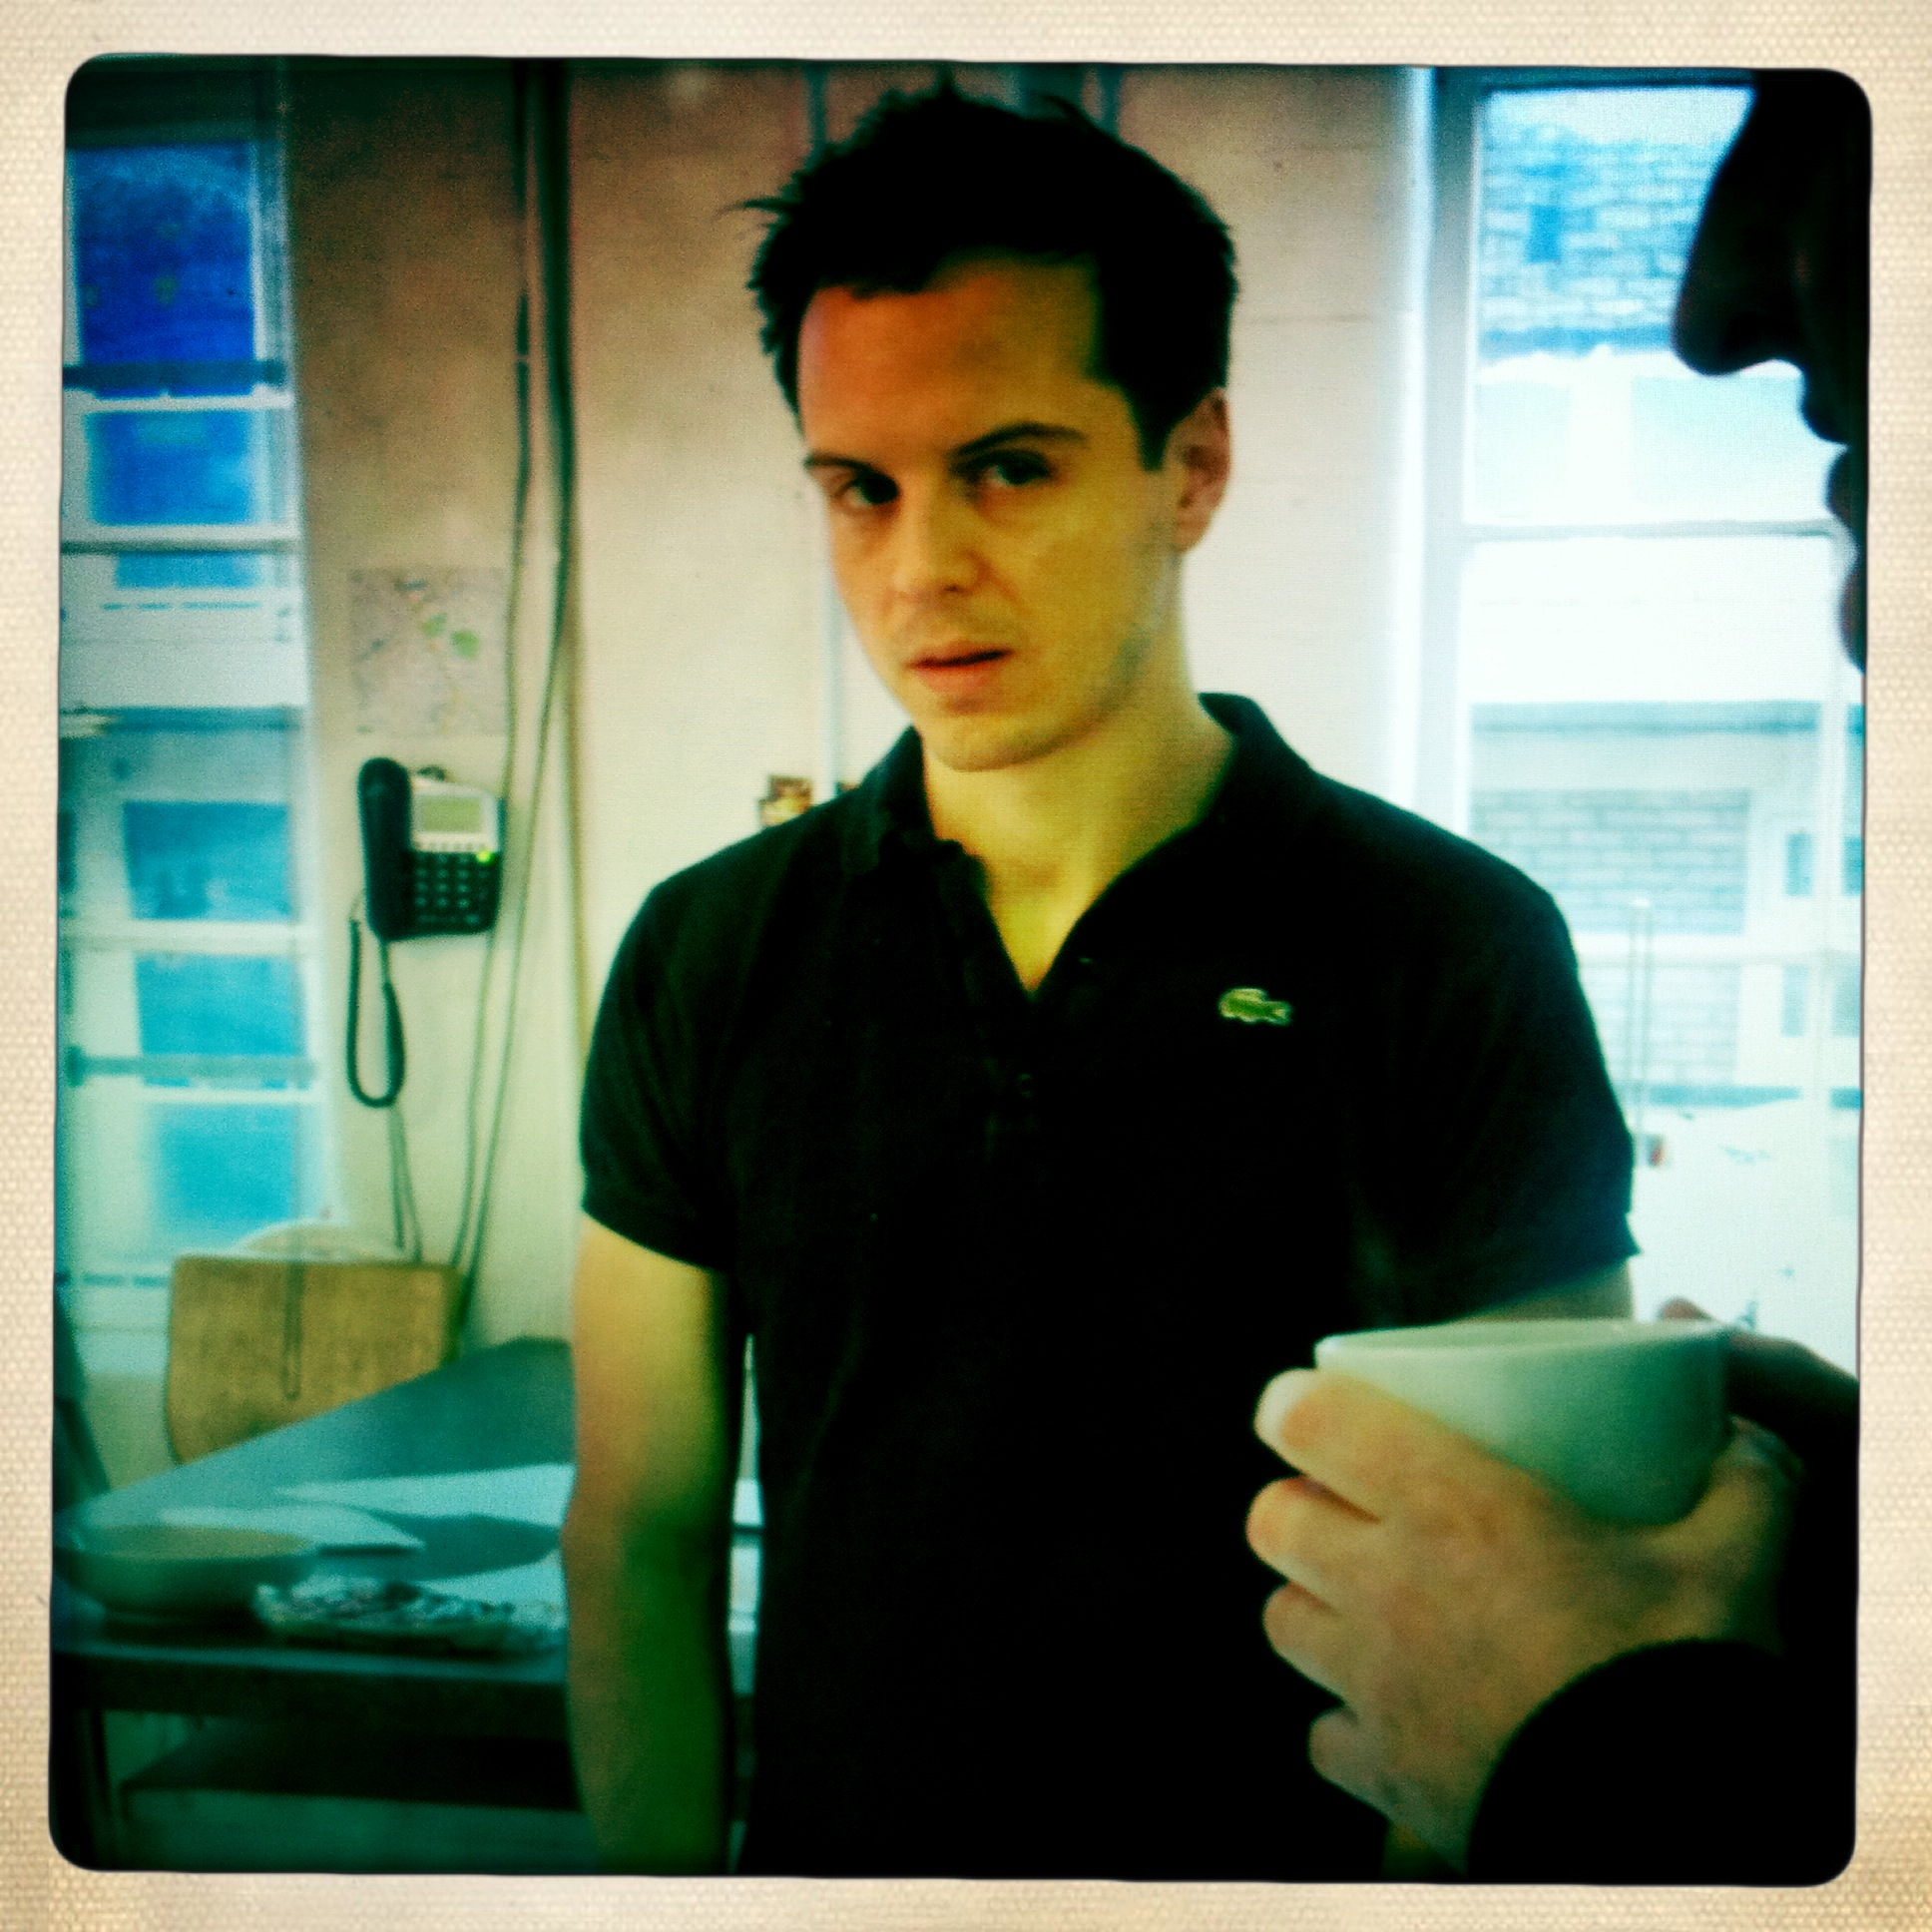 Andrew Scott (actor starring in BBC1's Sherlock as Moriarty) takes a break from Sea Wall filming